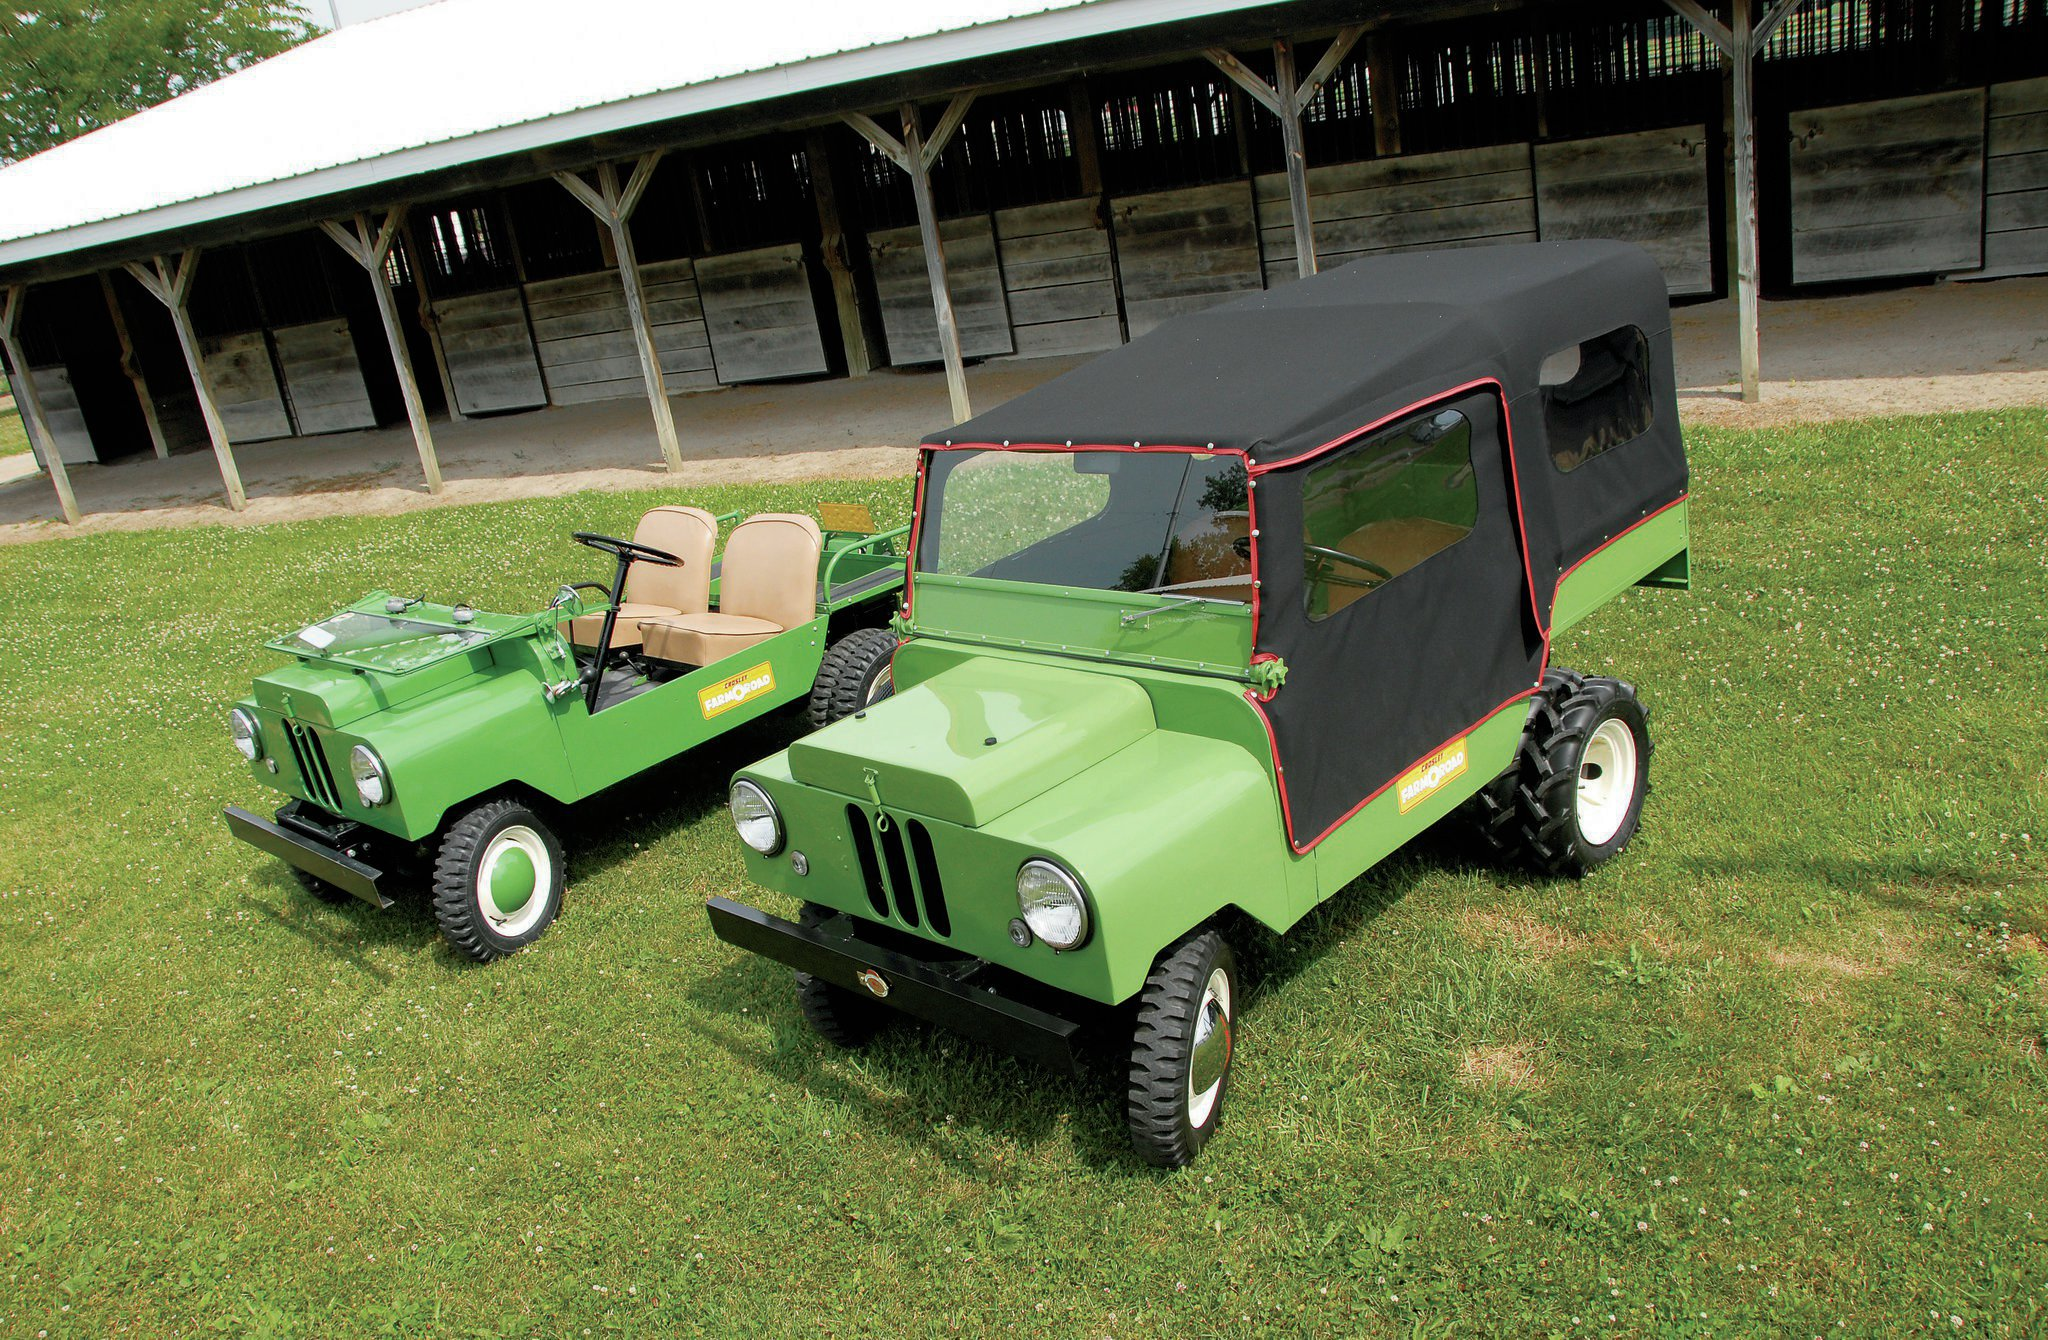 The tale of two Farm-O-Roads. Both have been restored by movers and shakers in the Farm-O-Road and Crosley community. On the left is Deane Sherman's FOR-1 with the top off. Among its options are rear duals, second windshield wiper, rear PTO, rear cargo box, and a few other small goodies. On the right is David Anspach's FOR sporting a hydraulic dump bed, rear PTO, chrome hubcaps, dual rear tractor tires, and a full top.